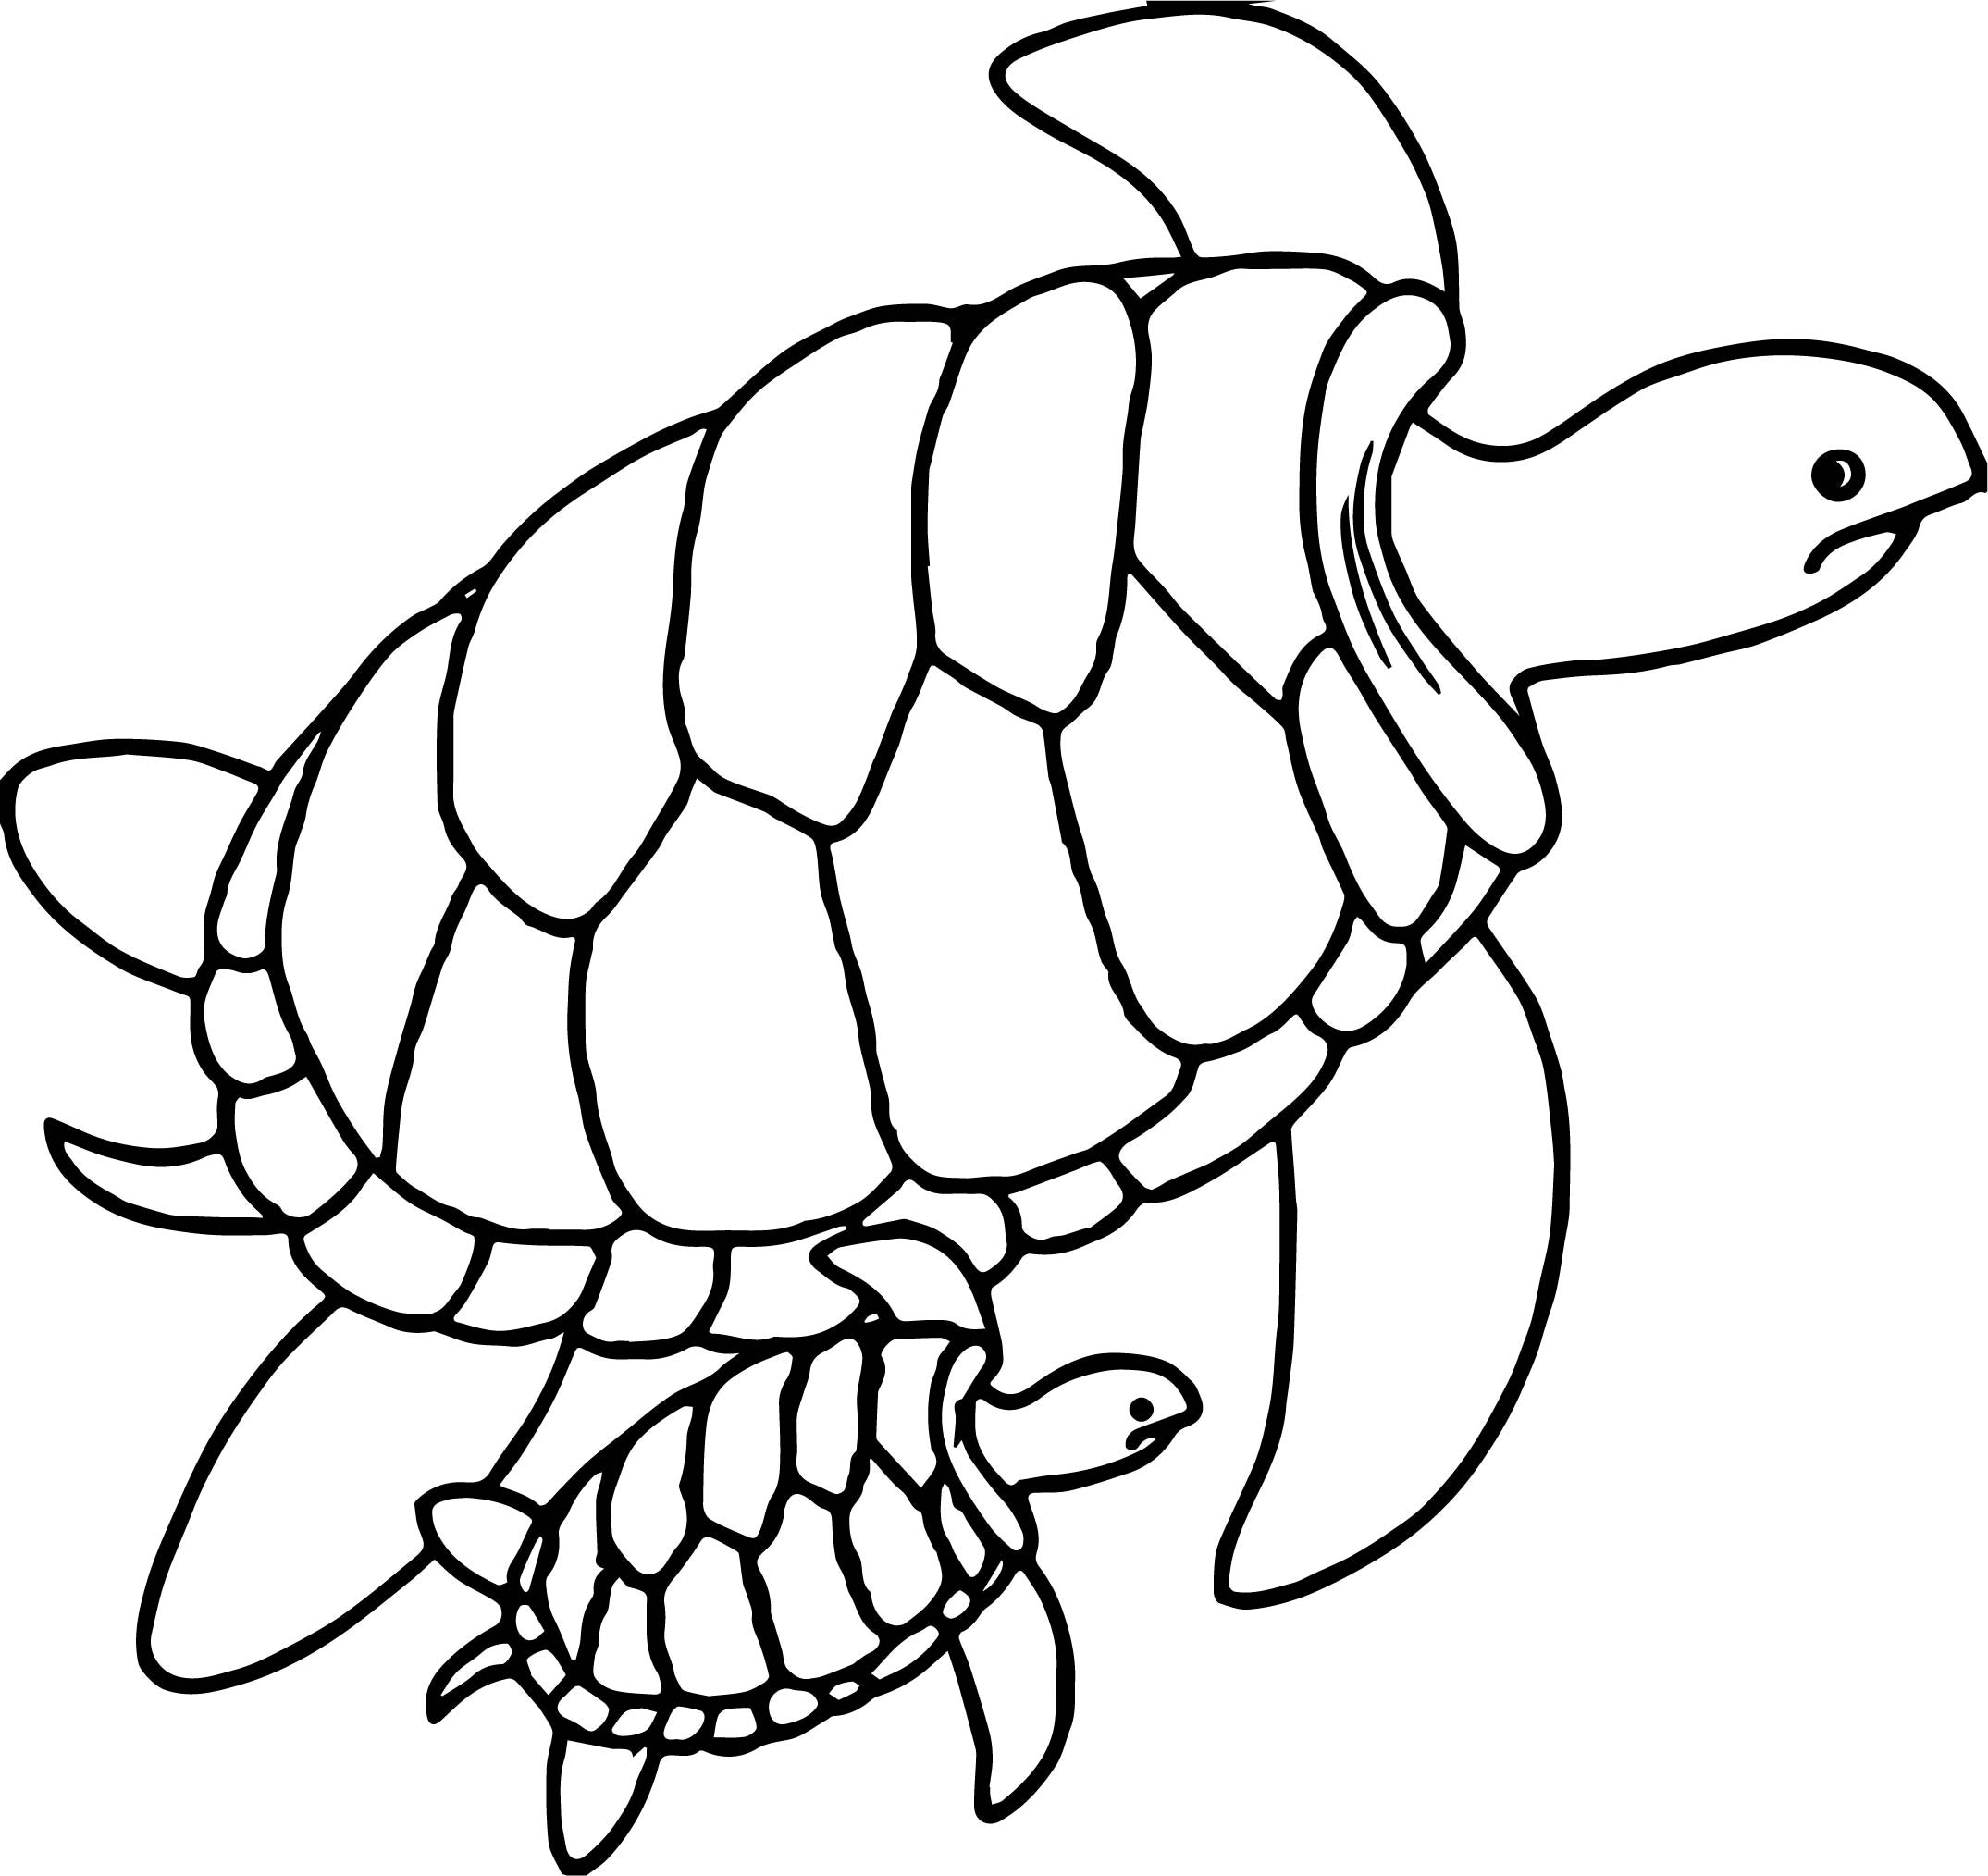 turtle coloring book page zentangle turtle coloring page free printable coloring pages coloring turtle book page